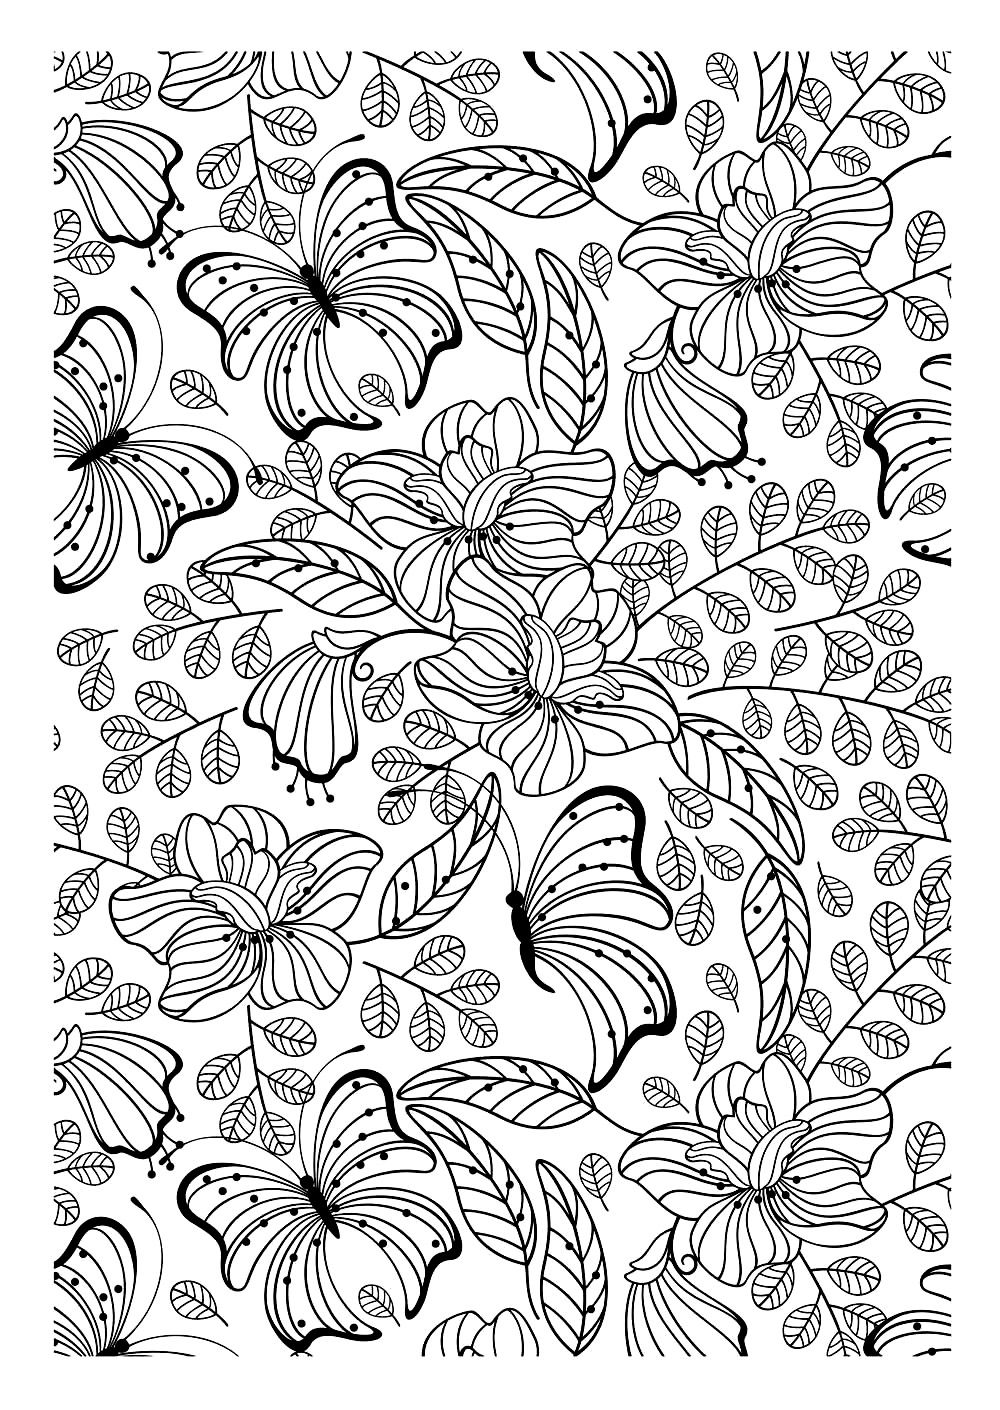 Free Coloring Page Coloring Adult Butterflys Another Image To Print